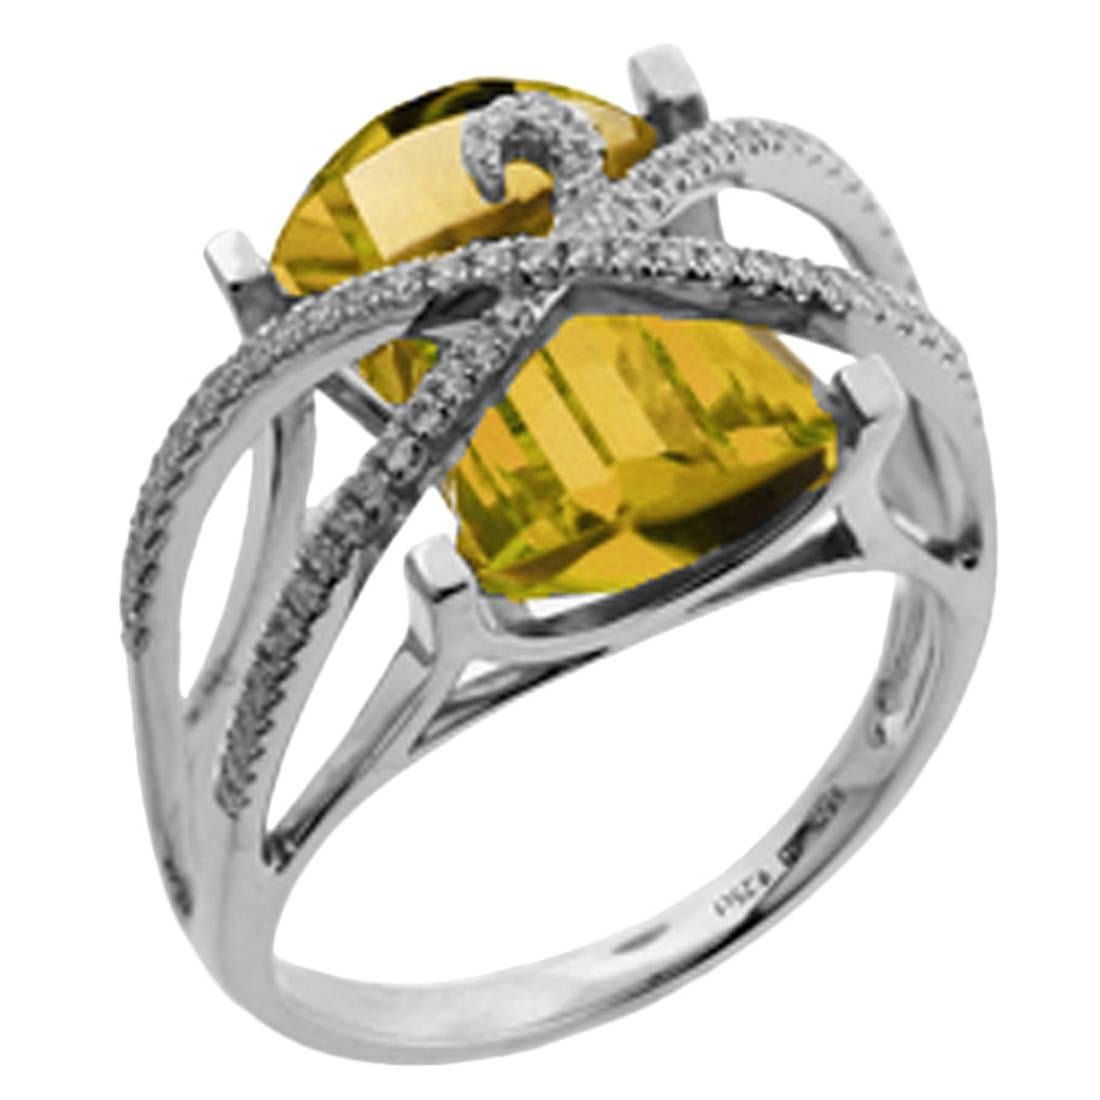 Awesome Citrine and Diamond Gold Cocktail Ring Estate Fine Jewelry